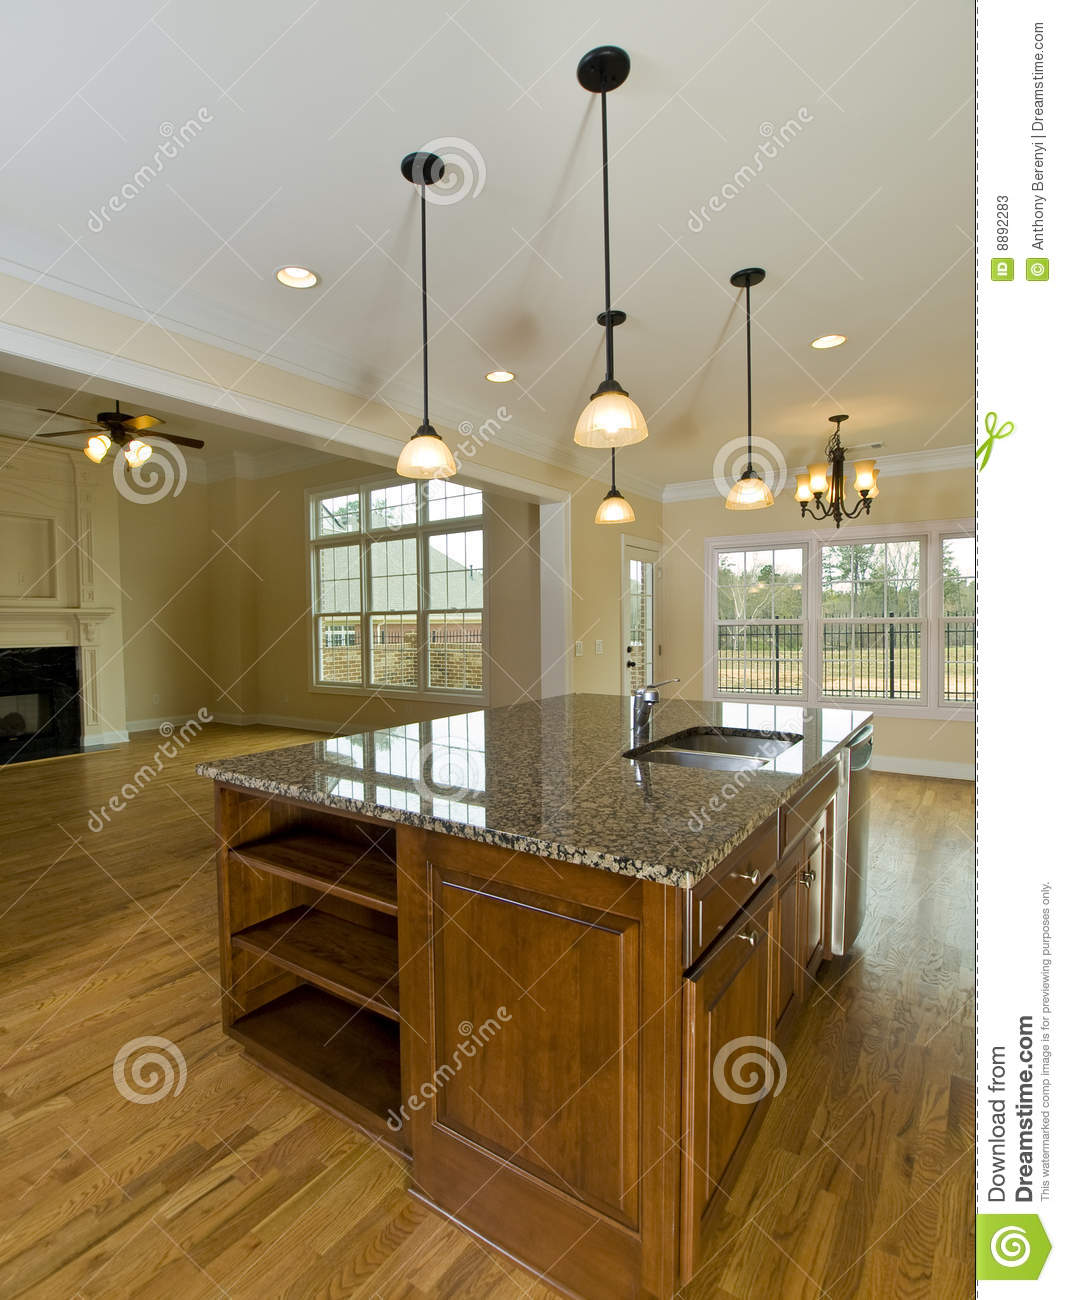 Luxury Home Kitchens: Luxury Home Kitchen Island With Hanging Lights Stock